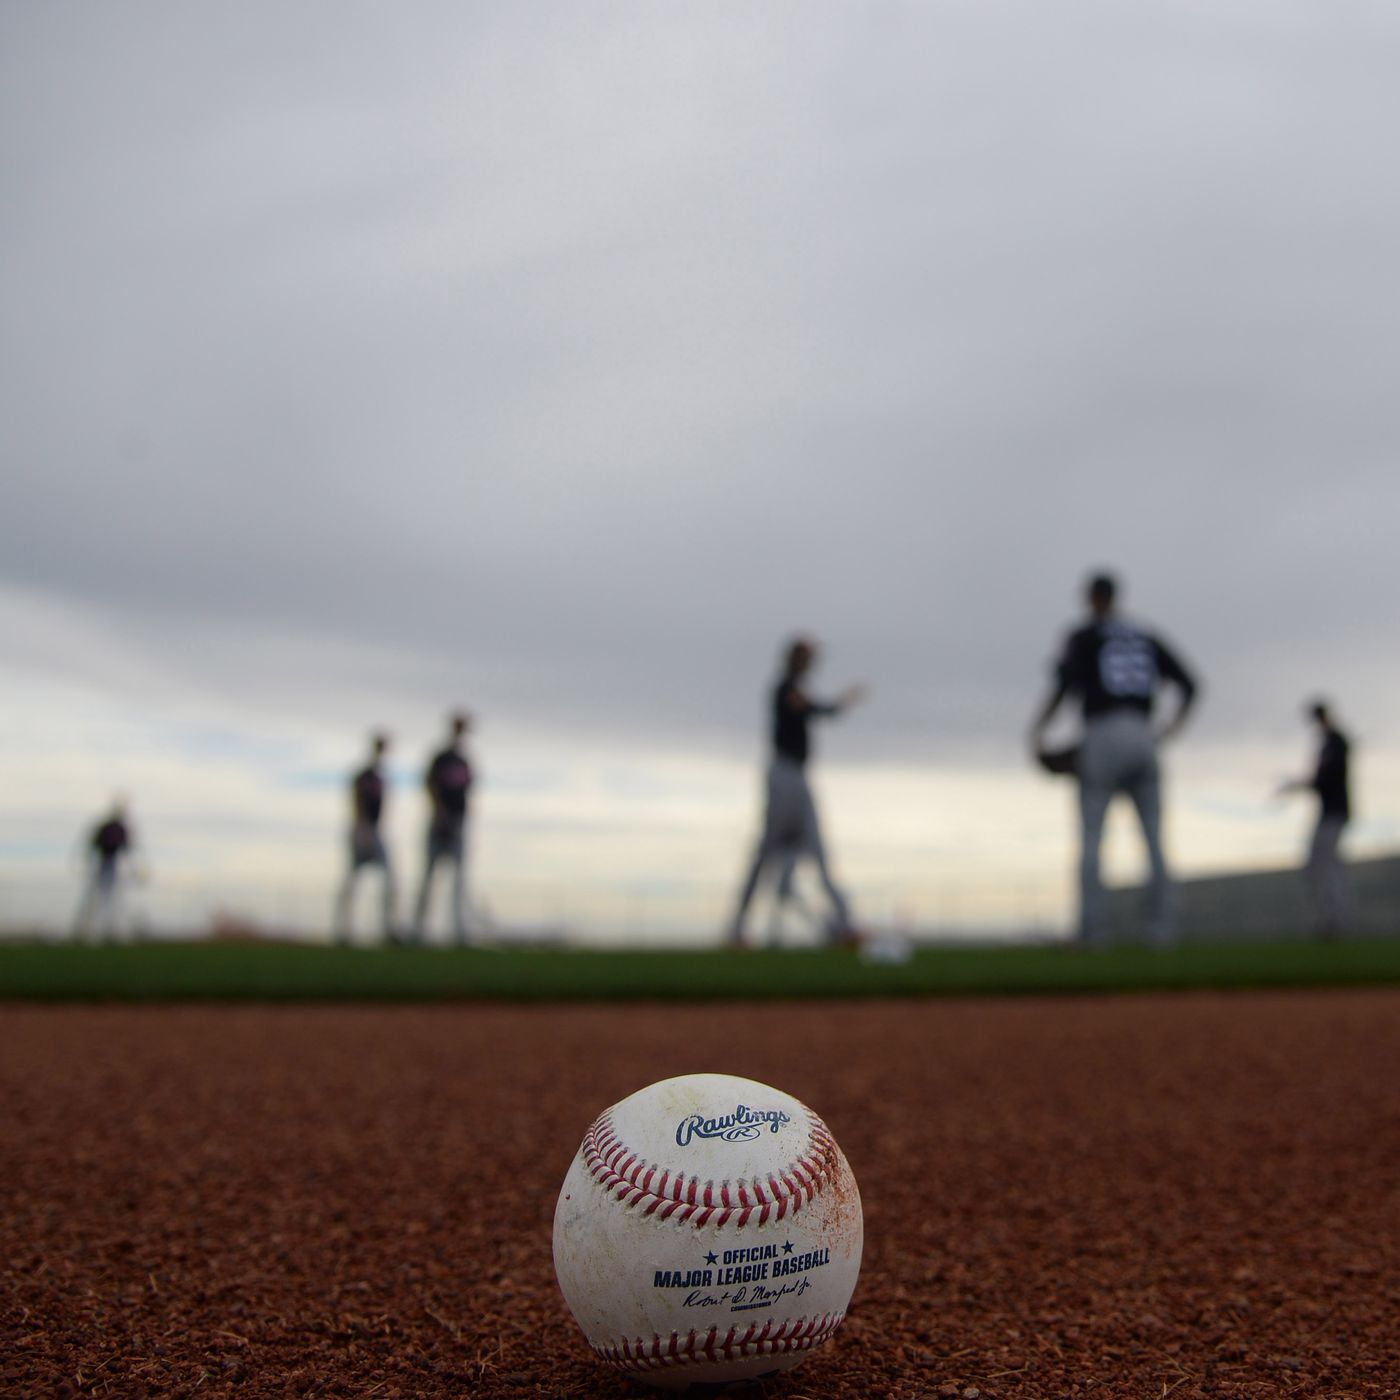 Cleveland Indians spring training games: How to watch and